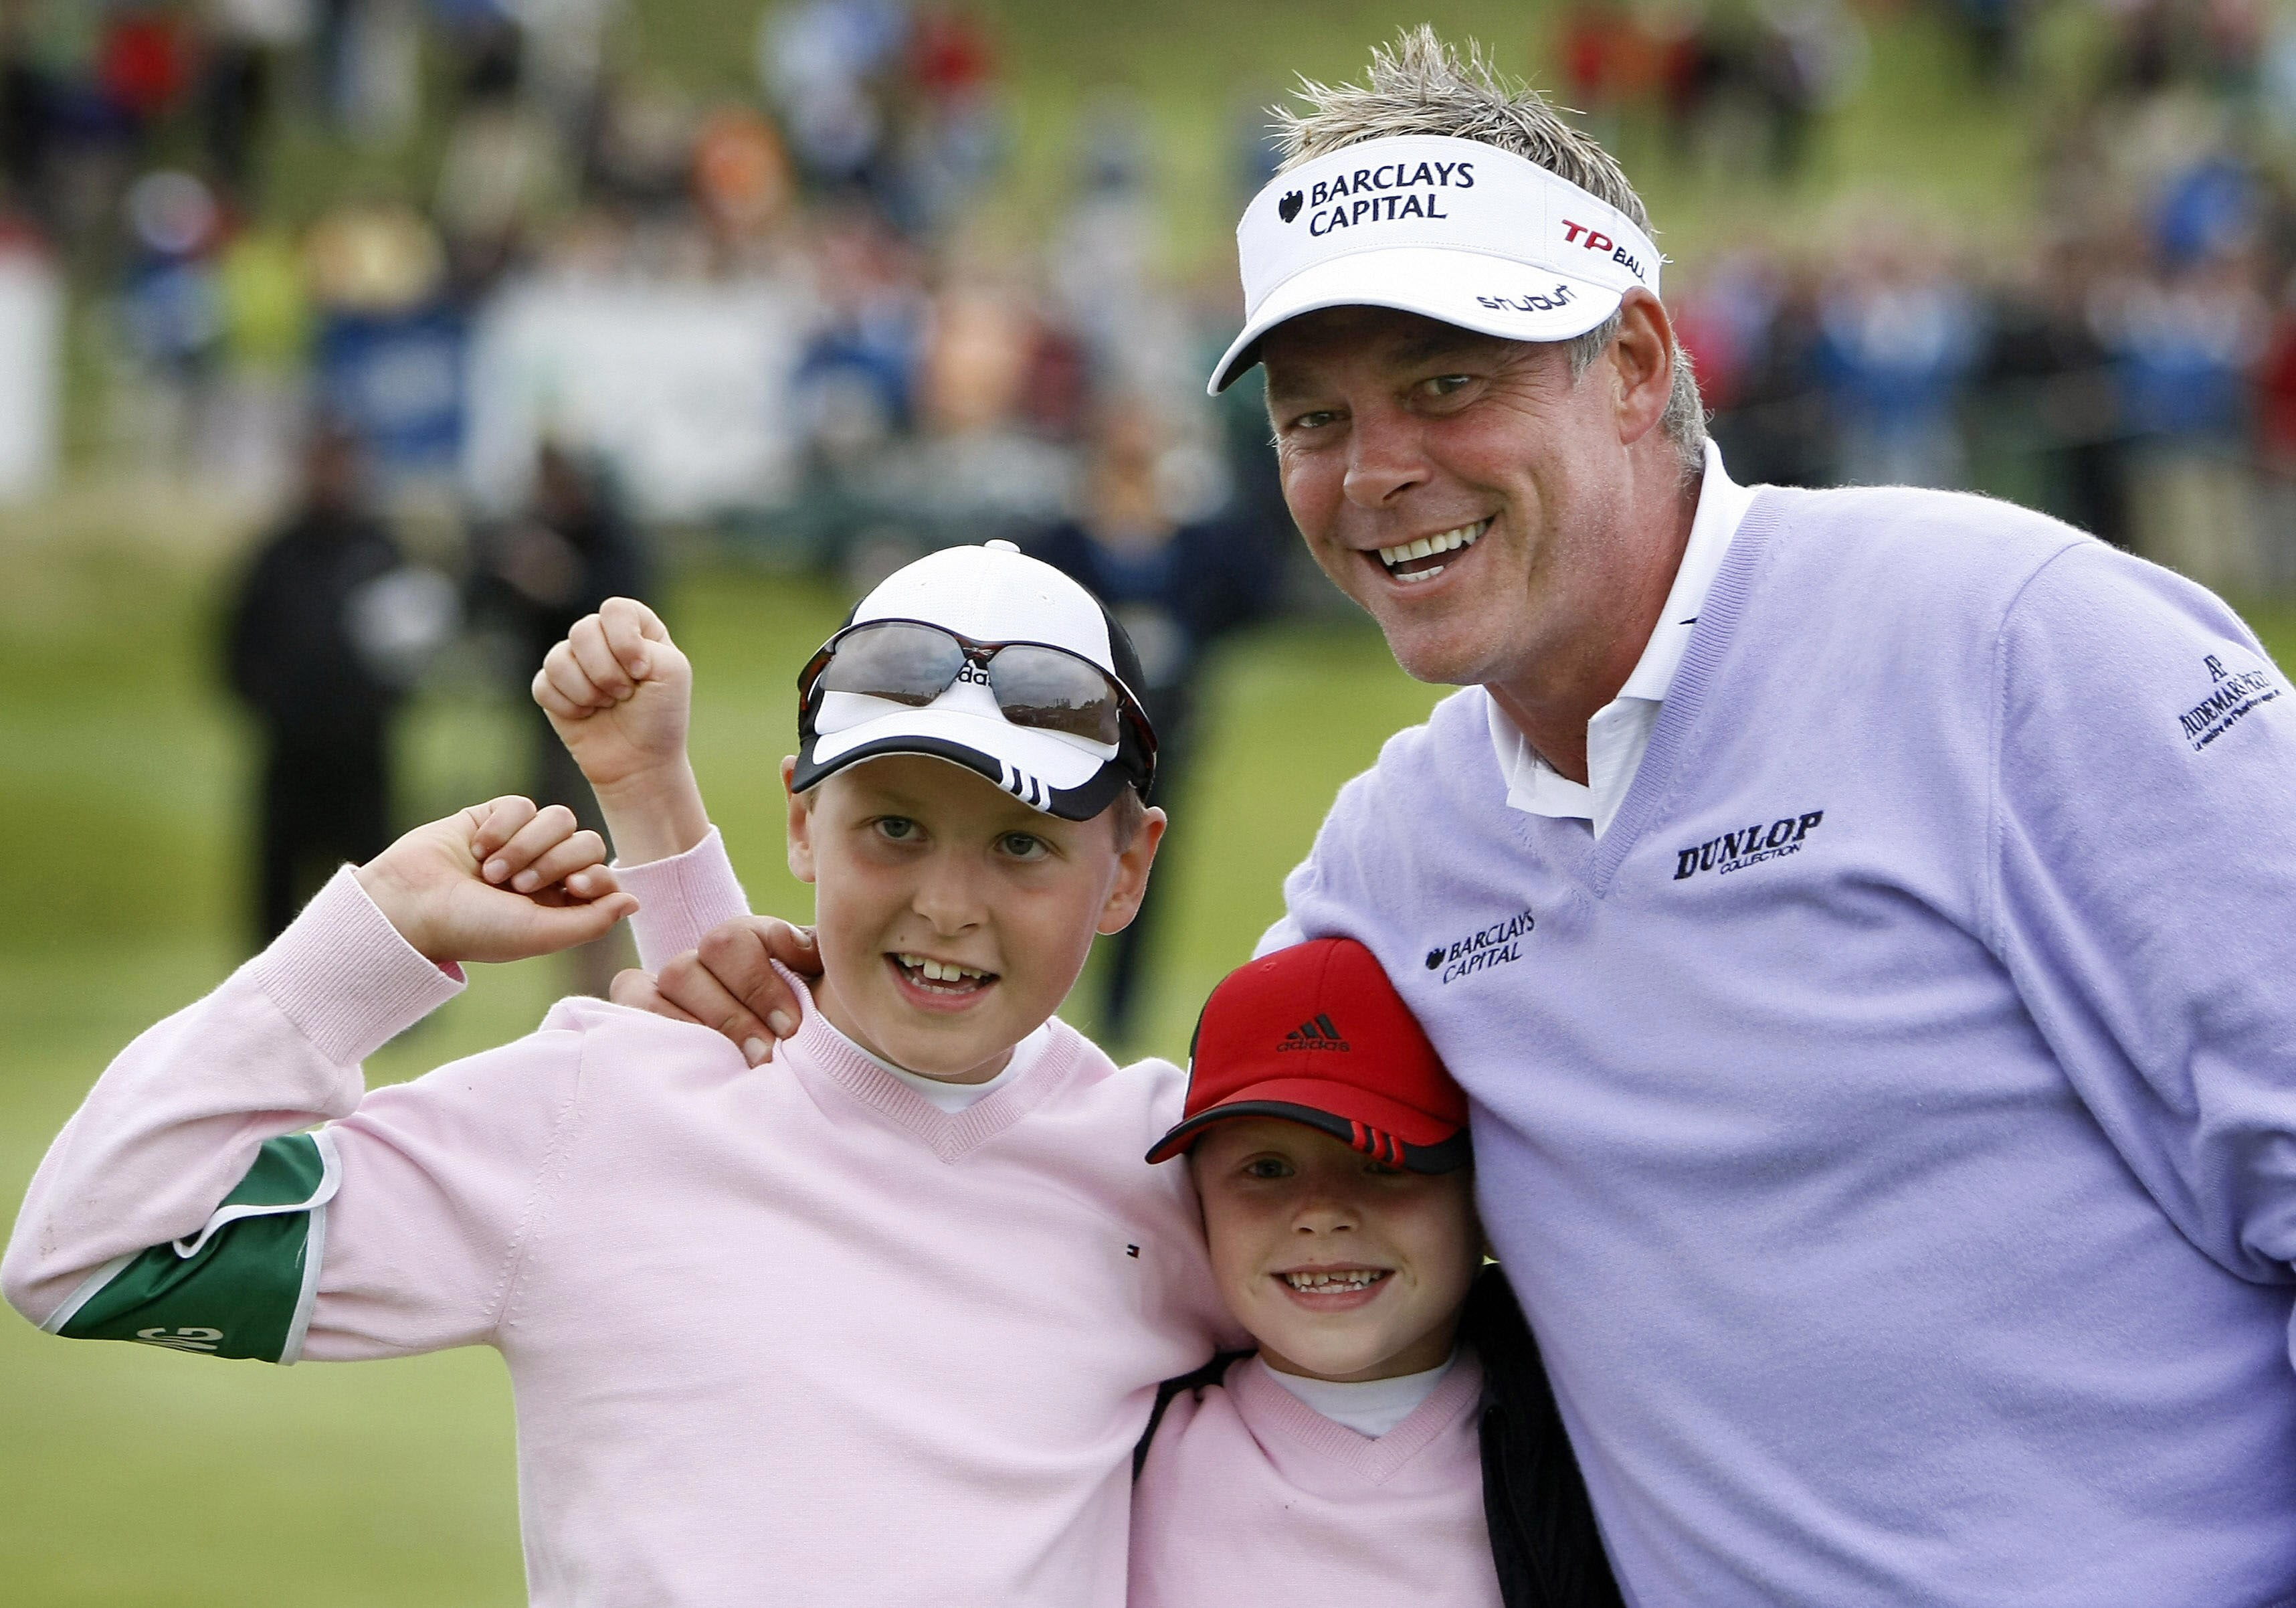 Darren Clarke with sons Conor and Tyrone in 2008